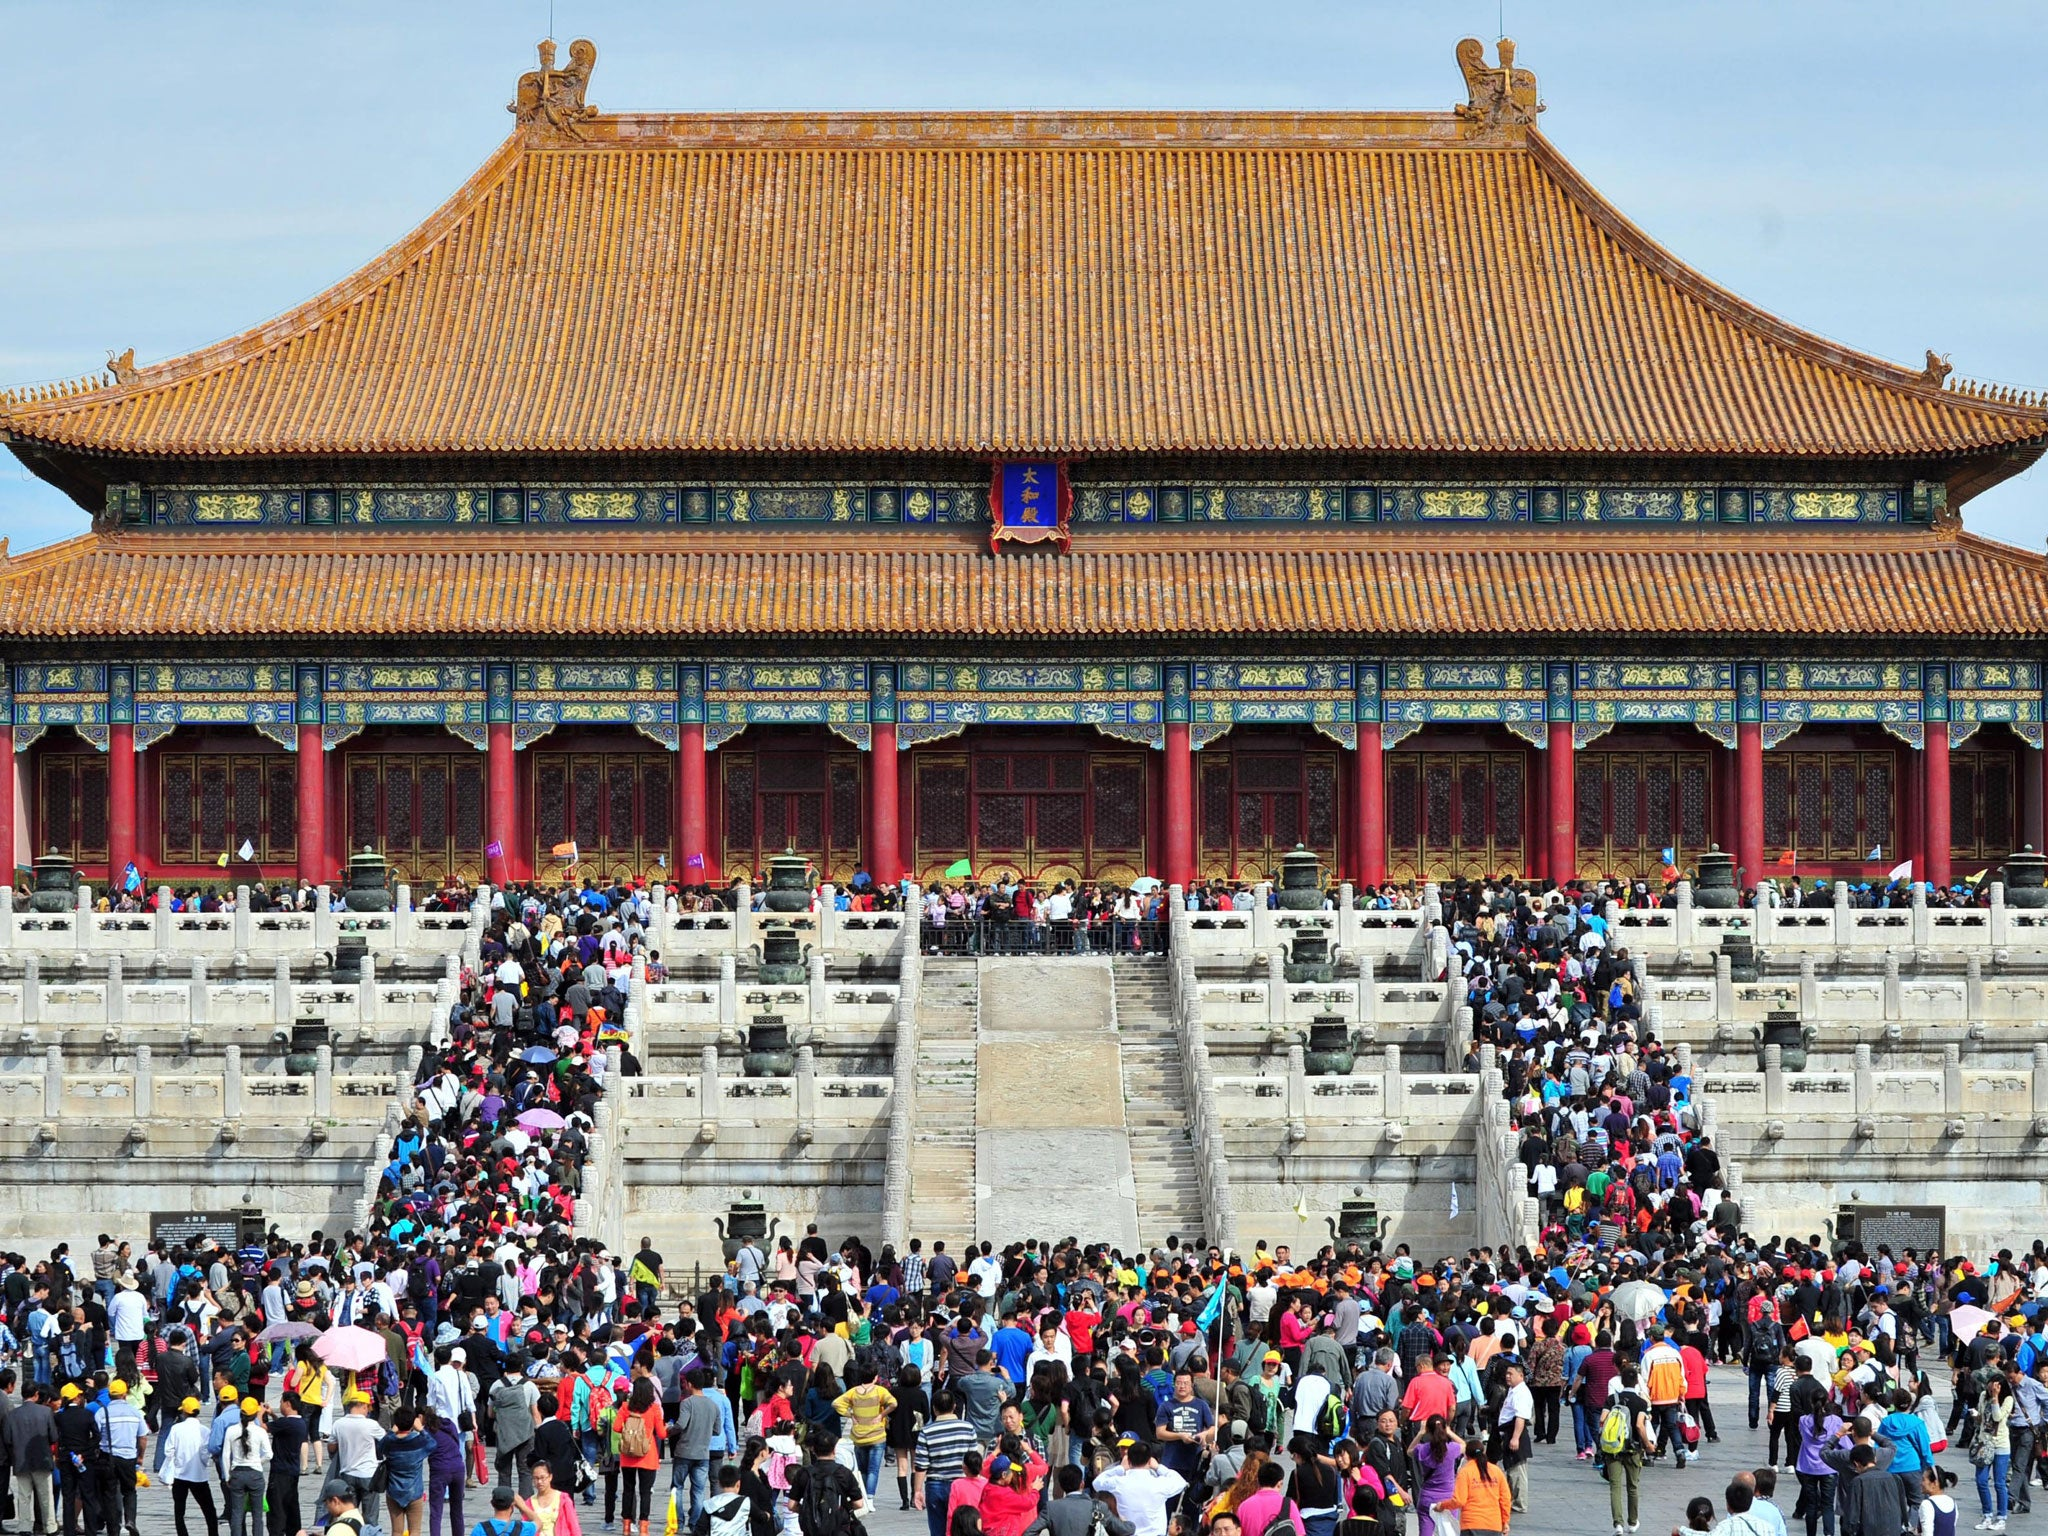 forbidden city 'forbidden city' is an approximation of the chinese 紫禁城 (zǐjìn chéng), a poetic moniker that also references the colour purple and the cosmically significant north star, the 'celestial seat' of the emperor.